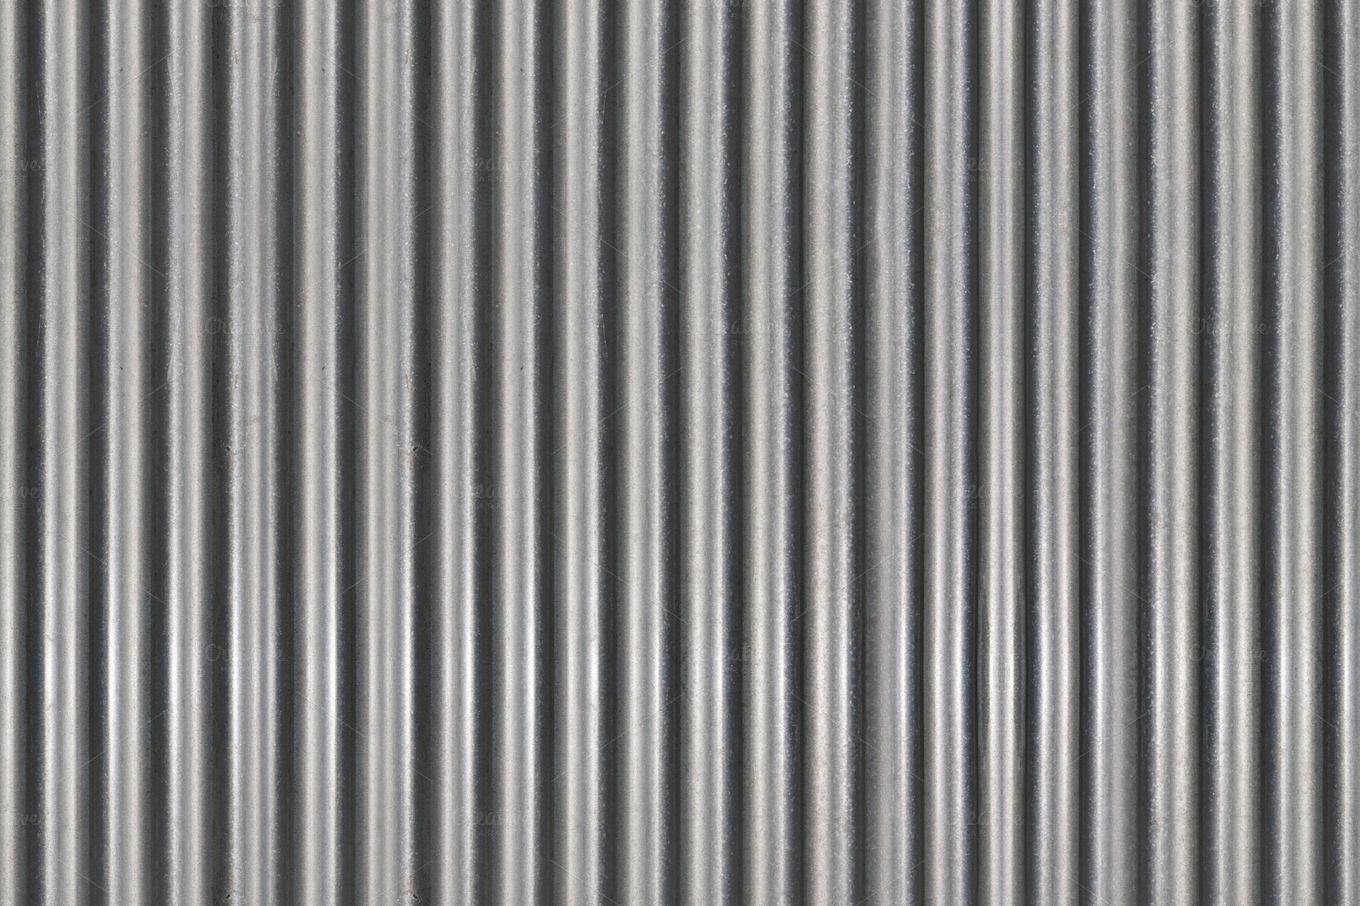 Steel Corrugated Metal O Jpg 1 360 906 Pixels Corrugated Metal Corrugated Metal Siding Metal Siding